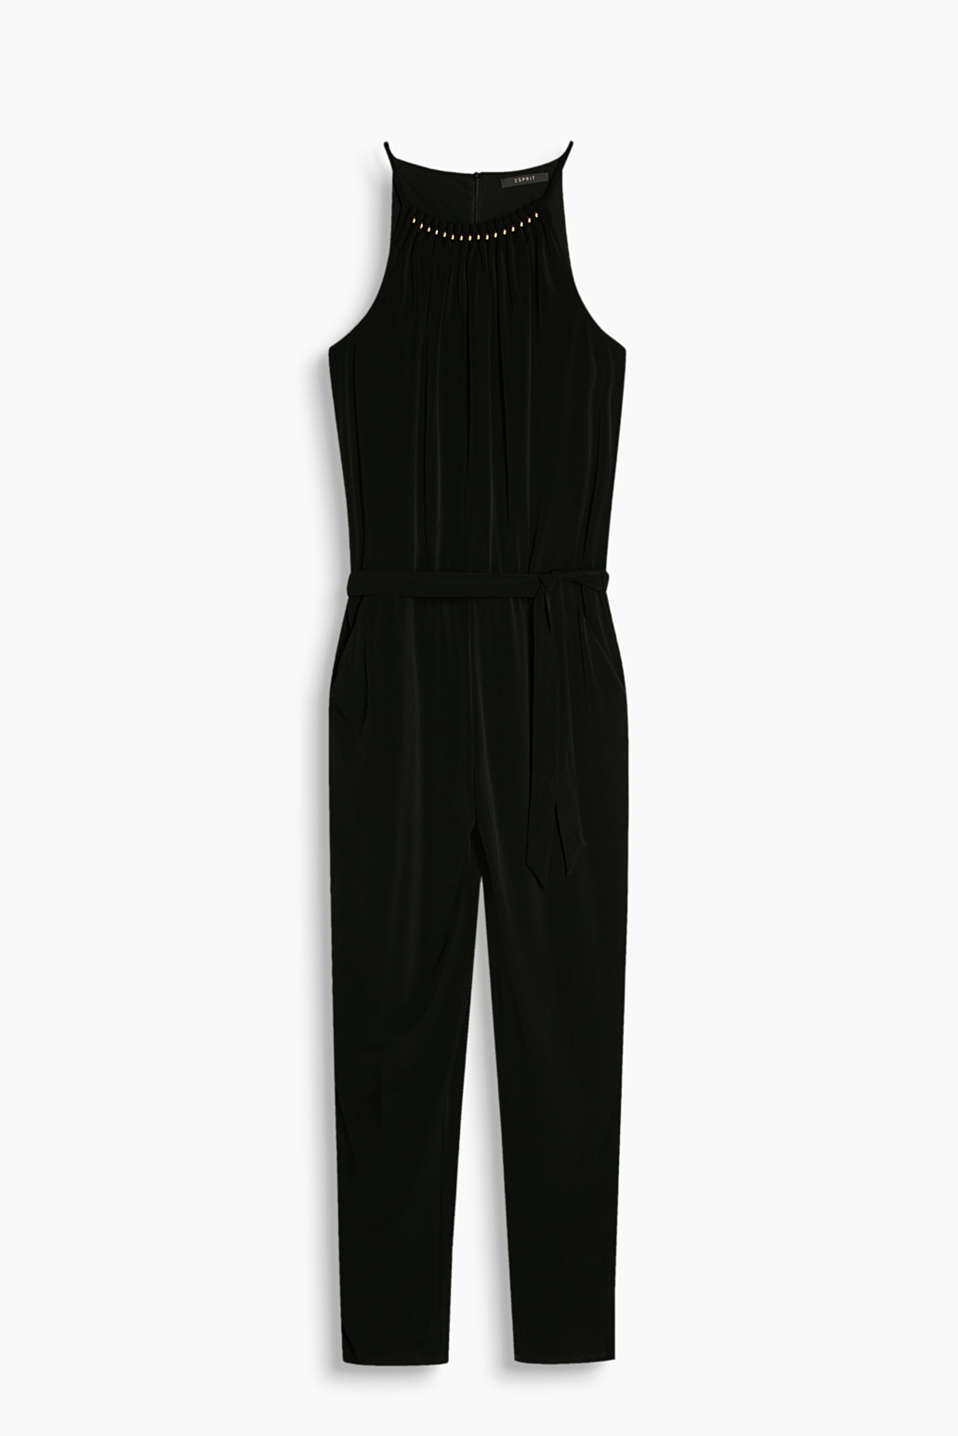 Fluid stretch jersey jumpsuit with an embellished neckline and American shoulders